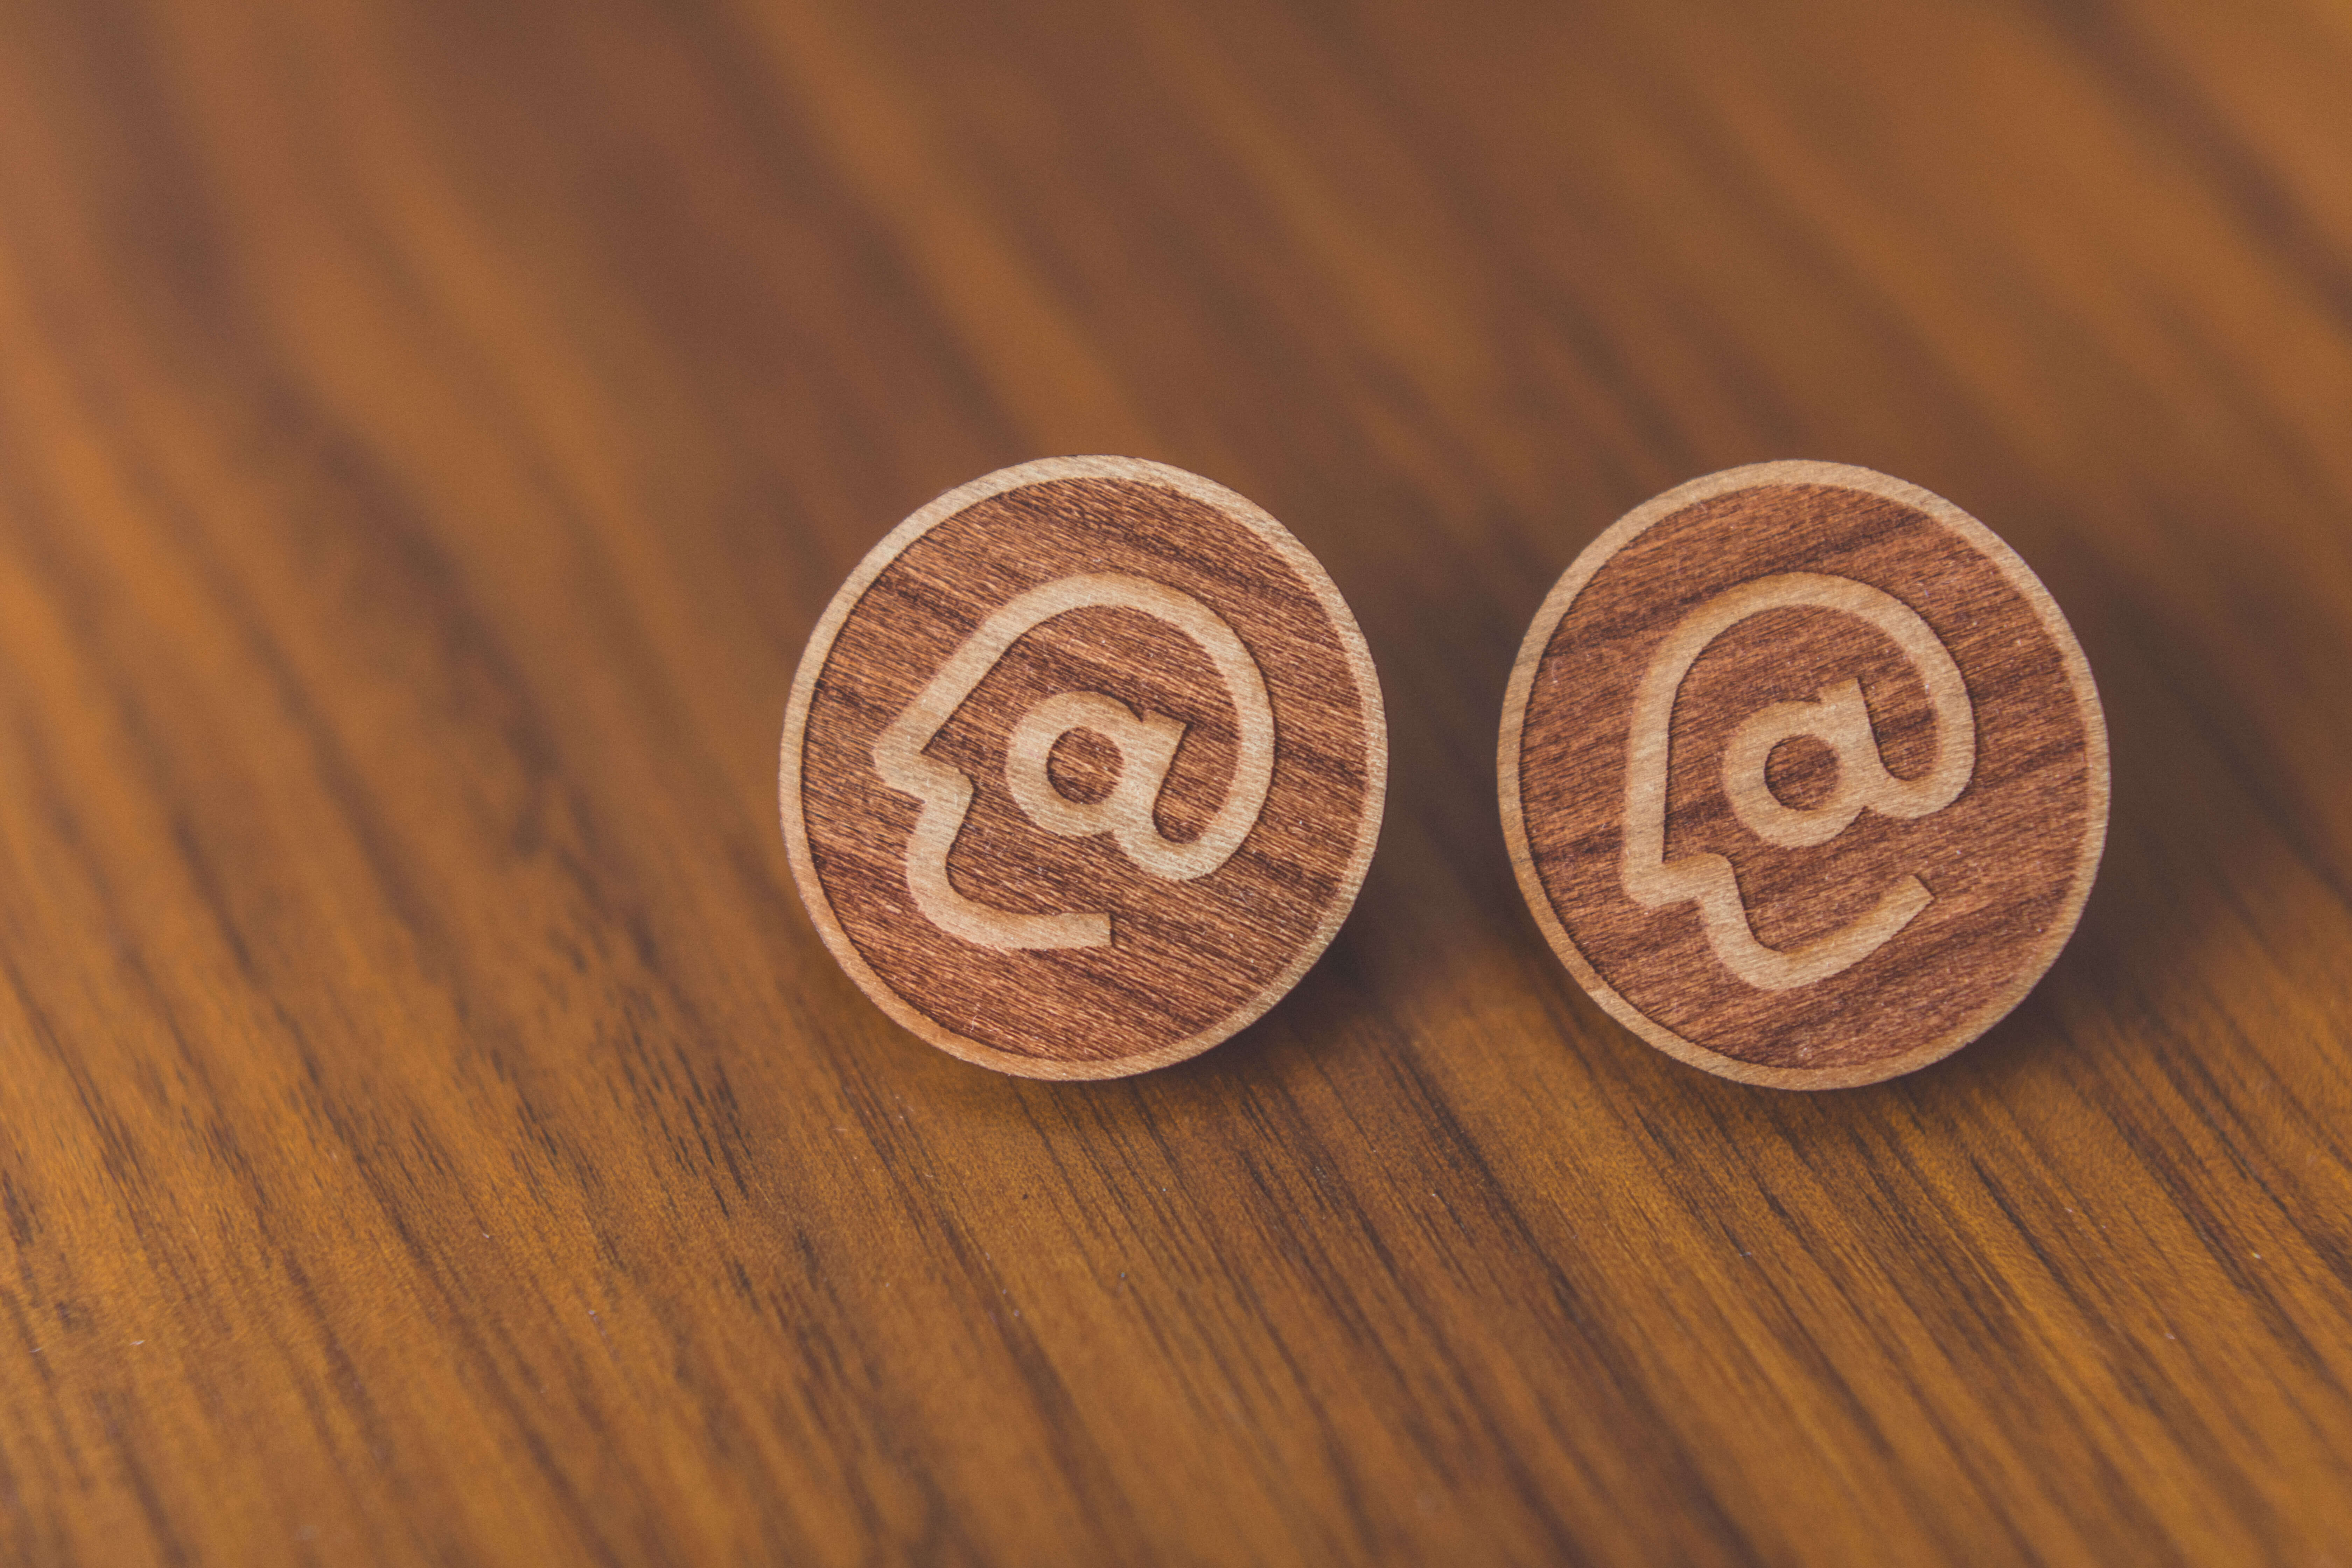 Close-up of two wood pins etched with Acumen's logo, designed by Serve.